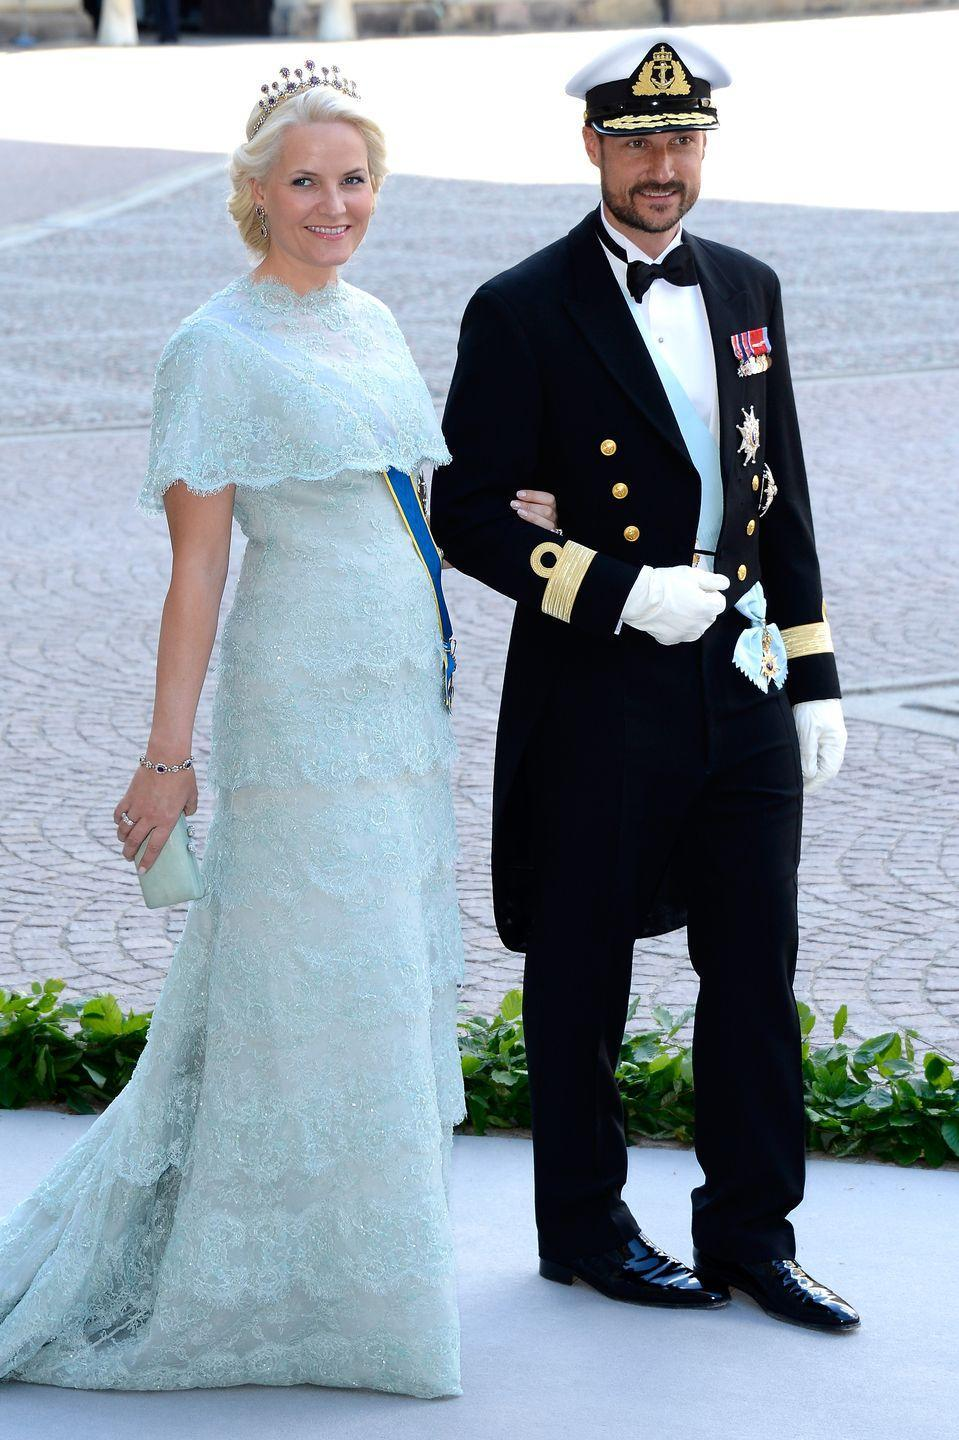 "<p>Høiby was a commoner and single mother who met Crown Prince Haakon of Norway in the late 1990s at the <span class=""redactor-unlink"">Quart Festival</span>, Norway's largest music festival. (Yes, apparently even royals love music festivals!) She became Princess Mette-Marit of Norway when the couple wed in 2001. </p>"